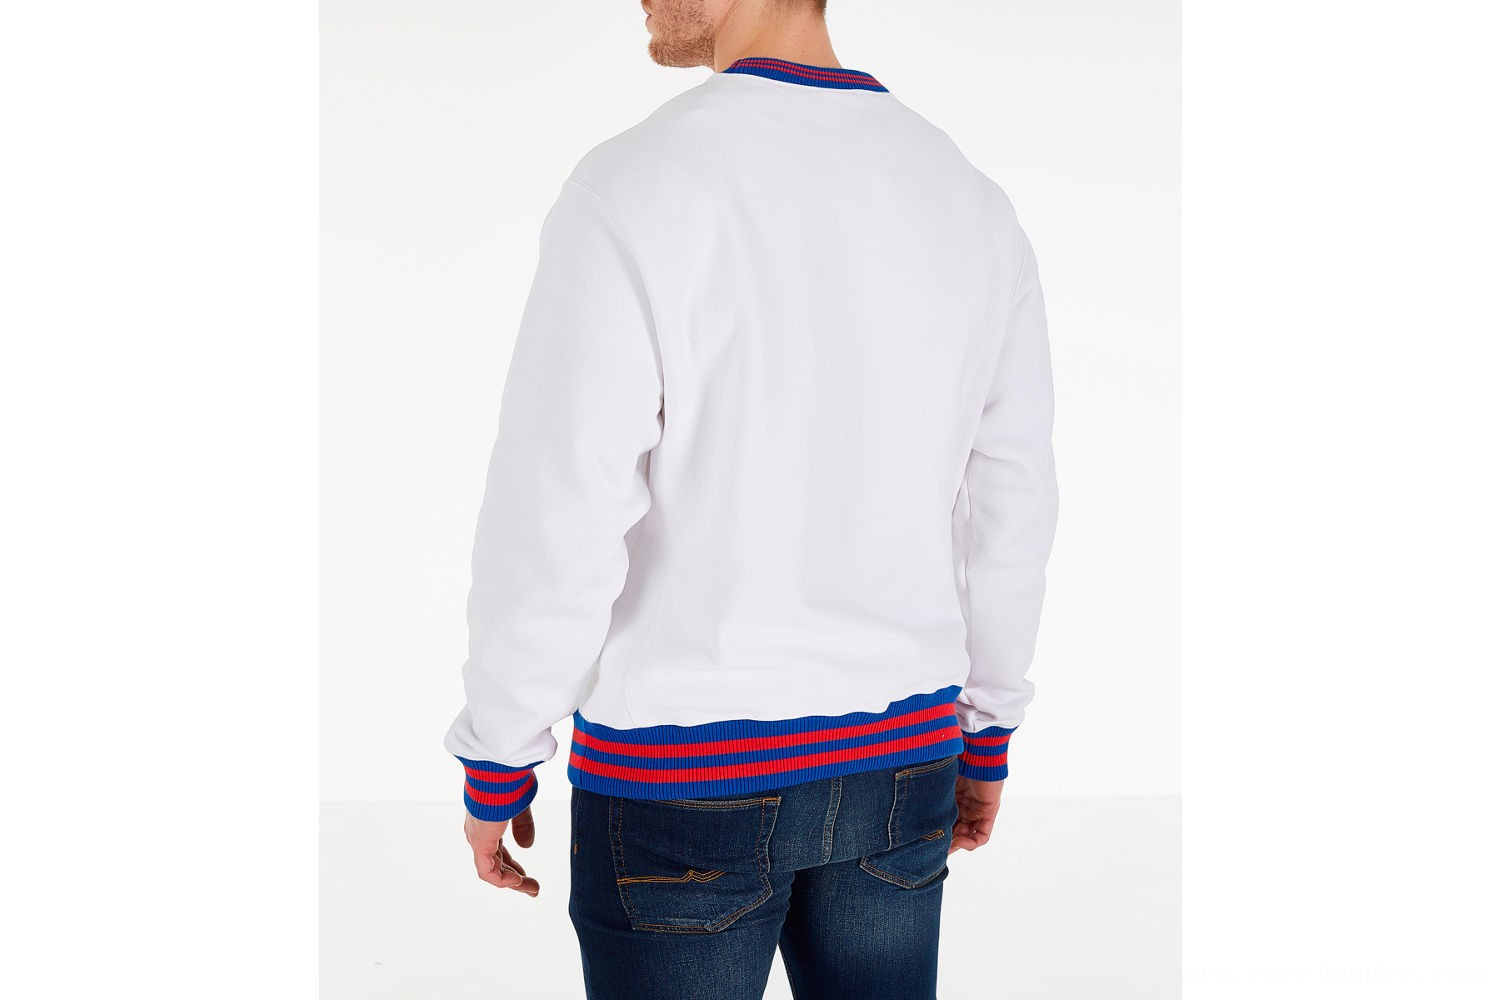 Champion Men's Yard Dyed Ribbed Crewneck Sweatshirt - White